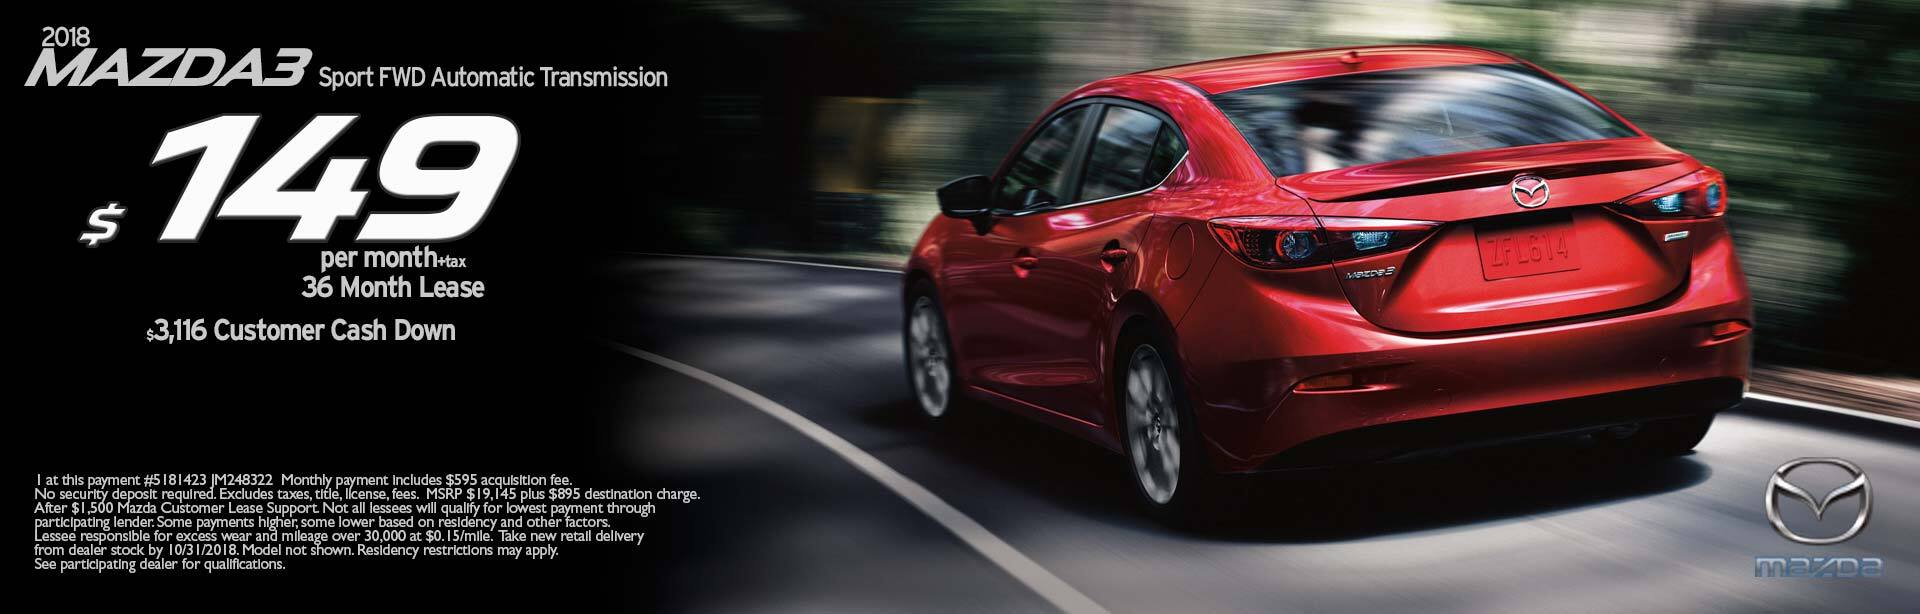 Mazda 3 Owners Manual: Parking Brake